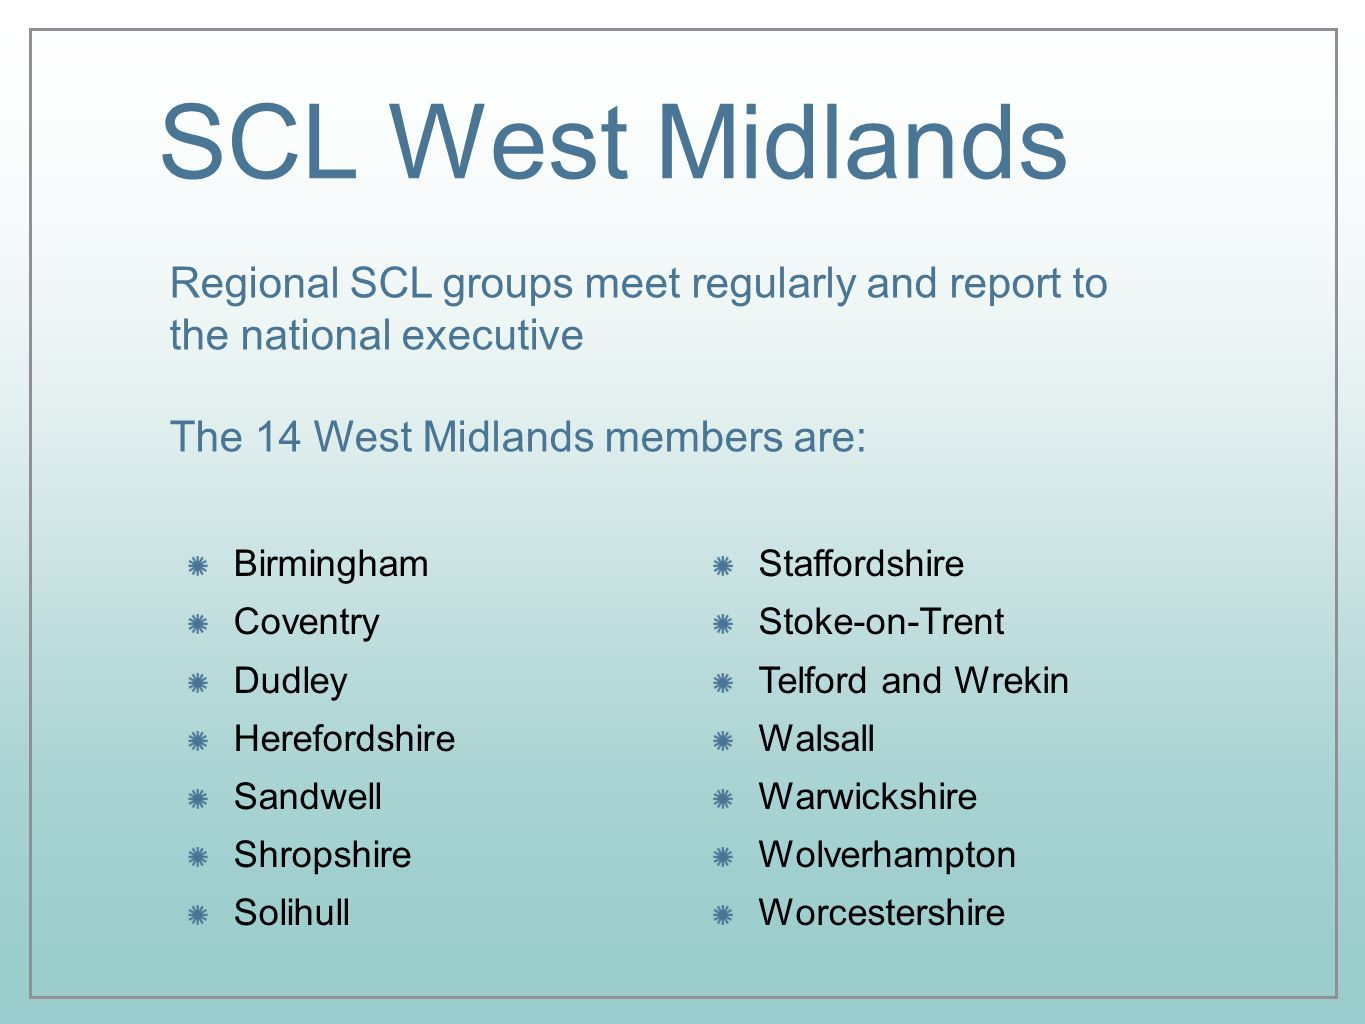 SCL West Midlands Birmingham Coventry Dudley Herefordshire Sandwell Shropshire Solihull Regional SCL groups meet regularly and report to the national executive The 14 West Midlands members are: Staffordshire Stoke-on-Trent Telford and Wrekin Walsall Warwickshire Wolverhampton Worcestershire